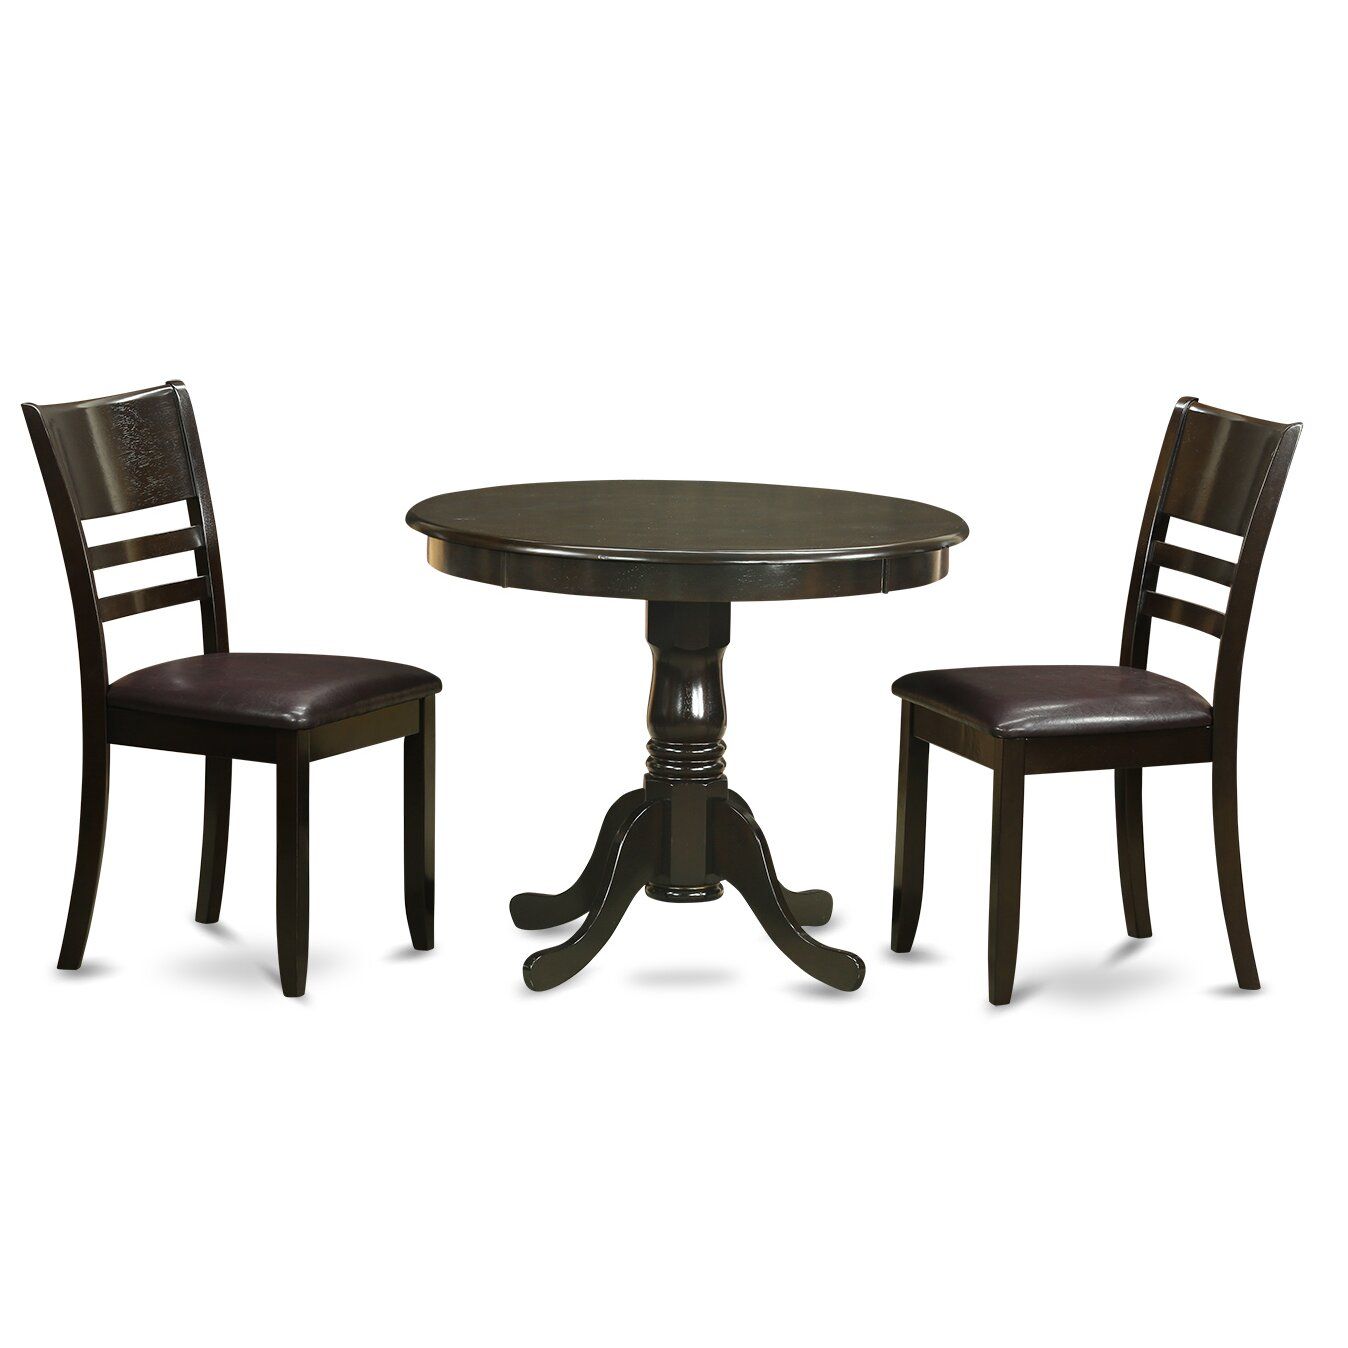 Wooden importers 3 piece dining set wayfair for Round dining table and chairs